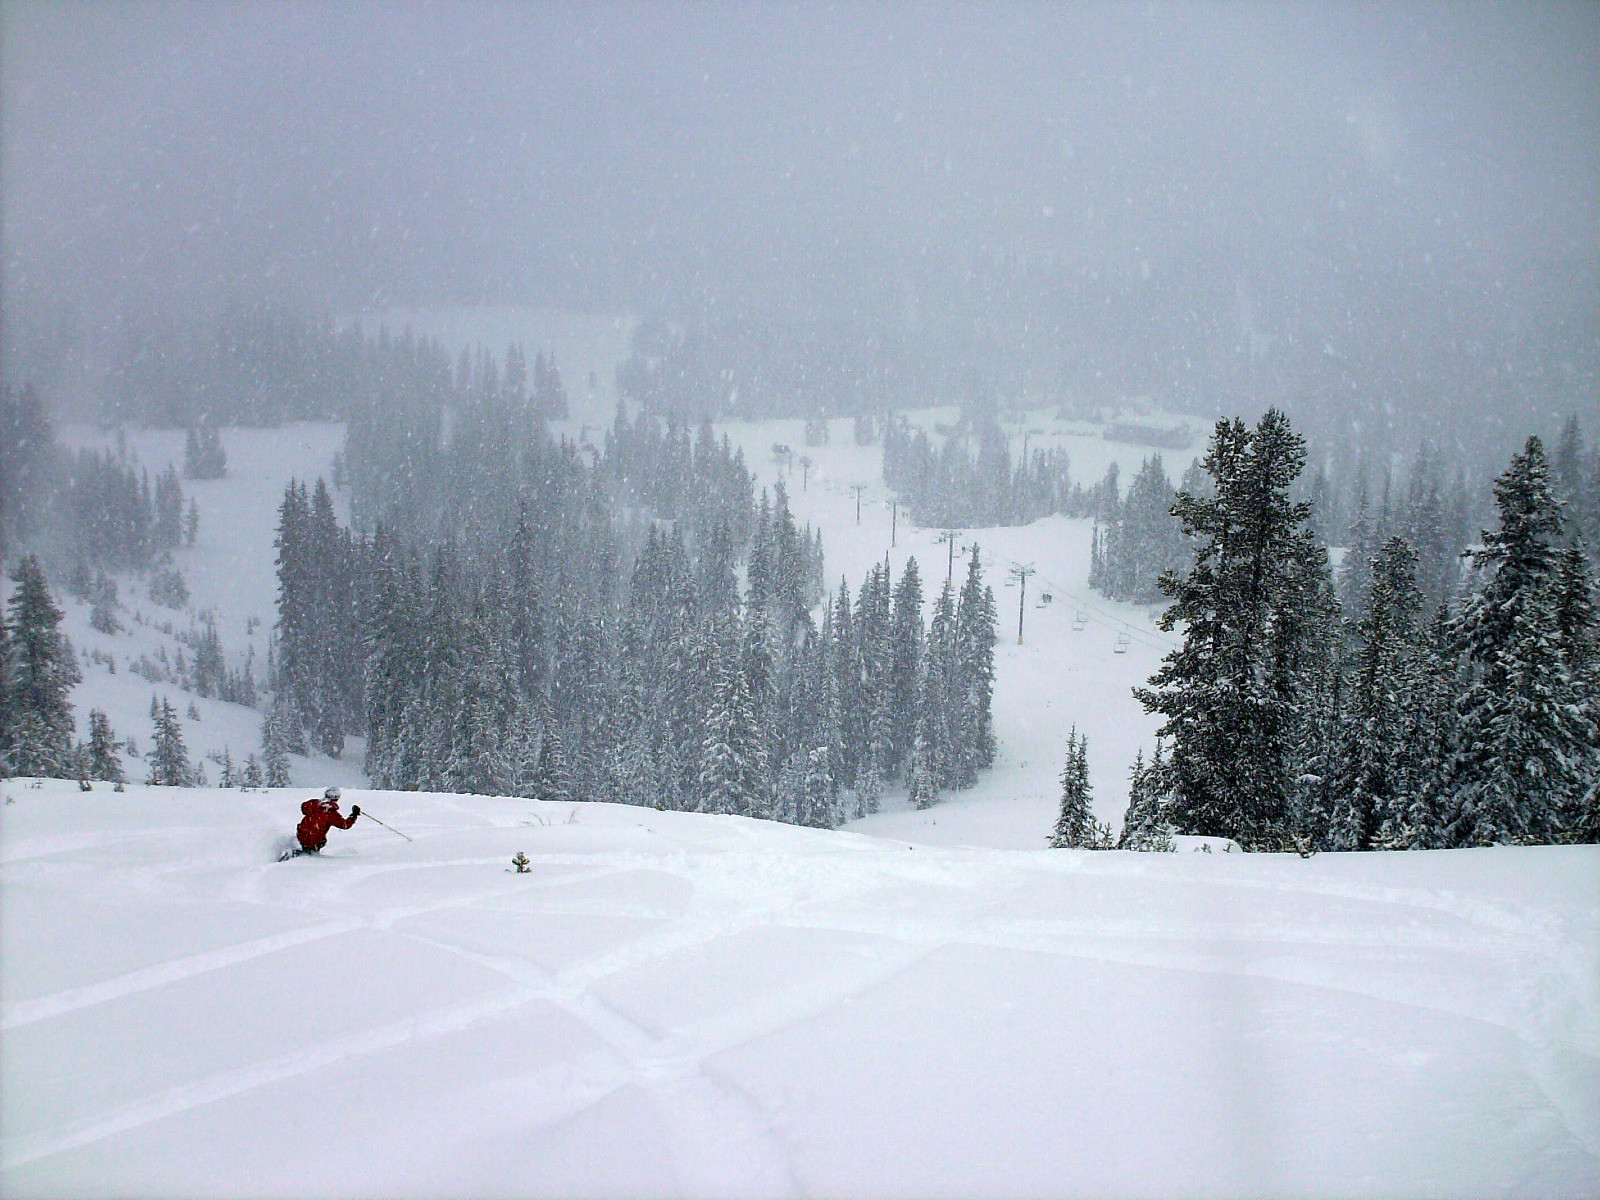 Telemarking in powder at Anthony Lakes. Photo by Brent/Flickr.undefined